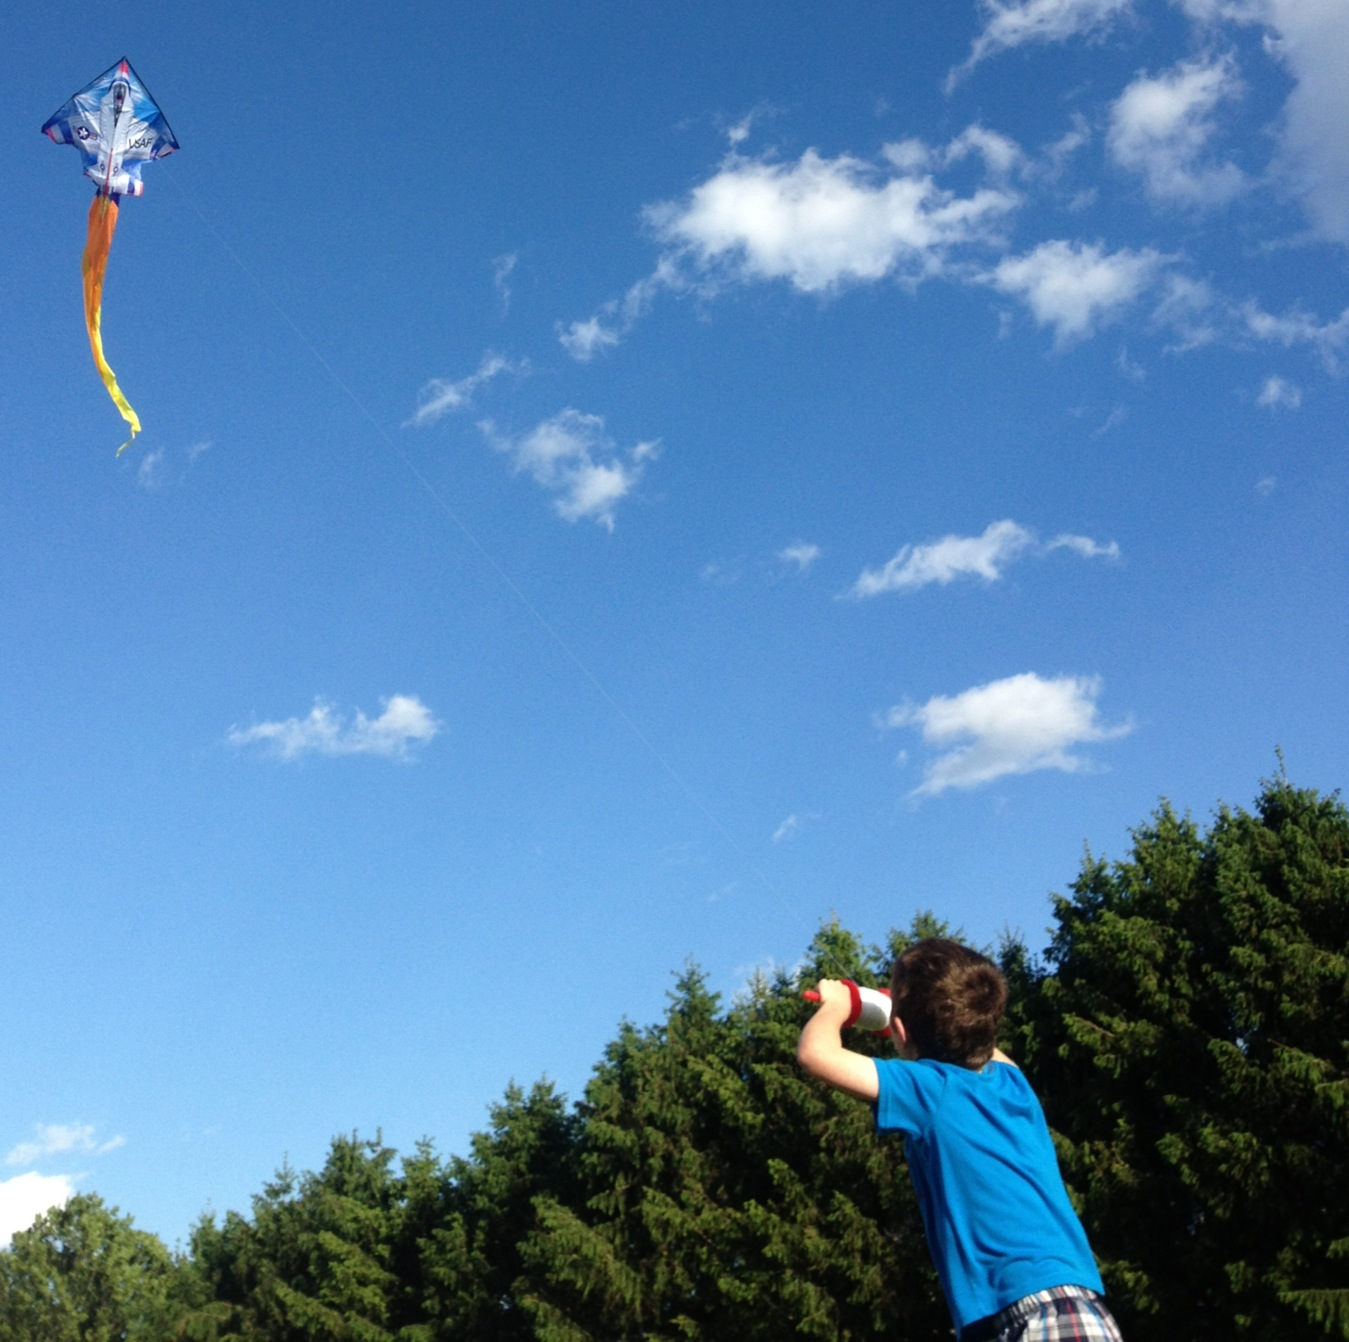 nick flying kite on memorial day weekend